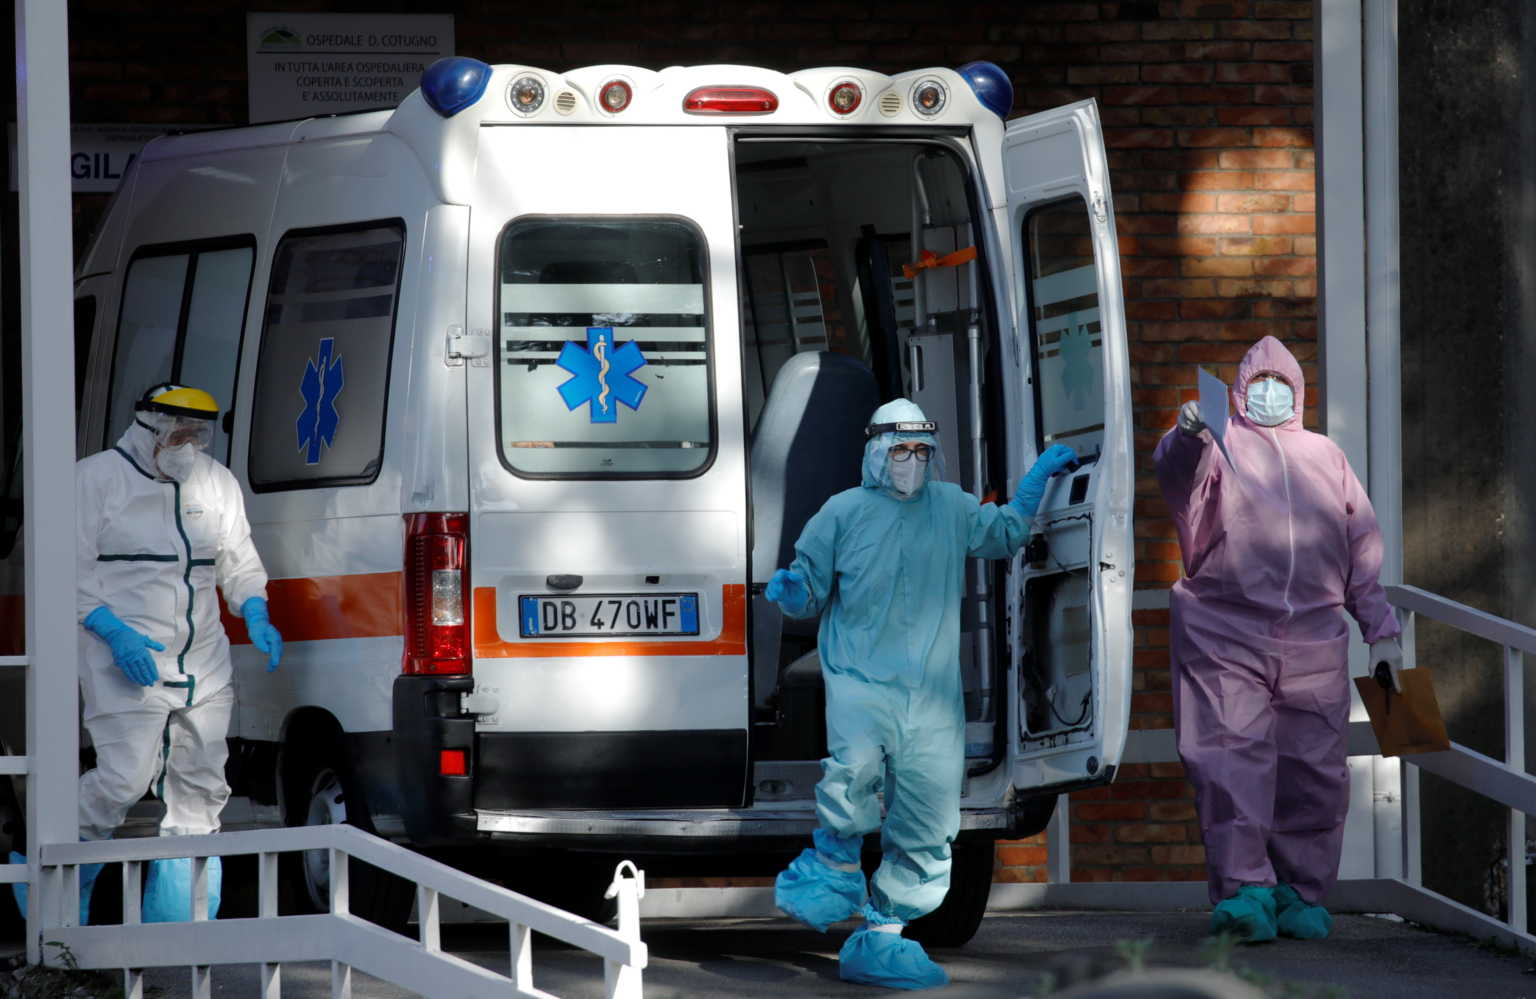 Medical workers wearing personal protective equipment (PPE) are seen next to an ambulance outside the Cotugno hospital as the battle with the coronavirus disease (COVID-19) intensifies, in Naples, Italy, November 9, 2020. REUTERS/Ciro De Luca